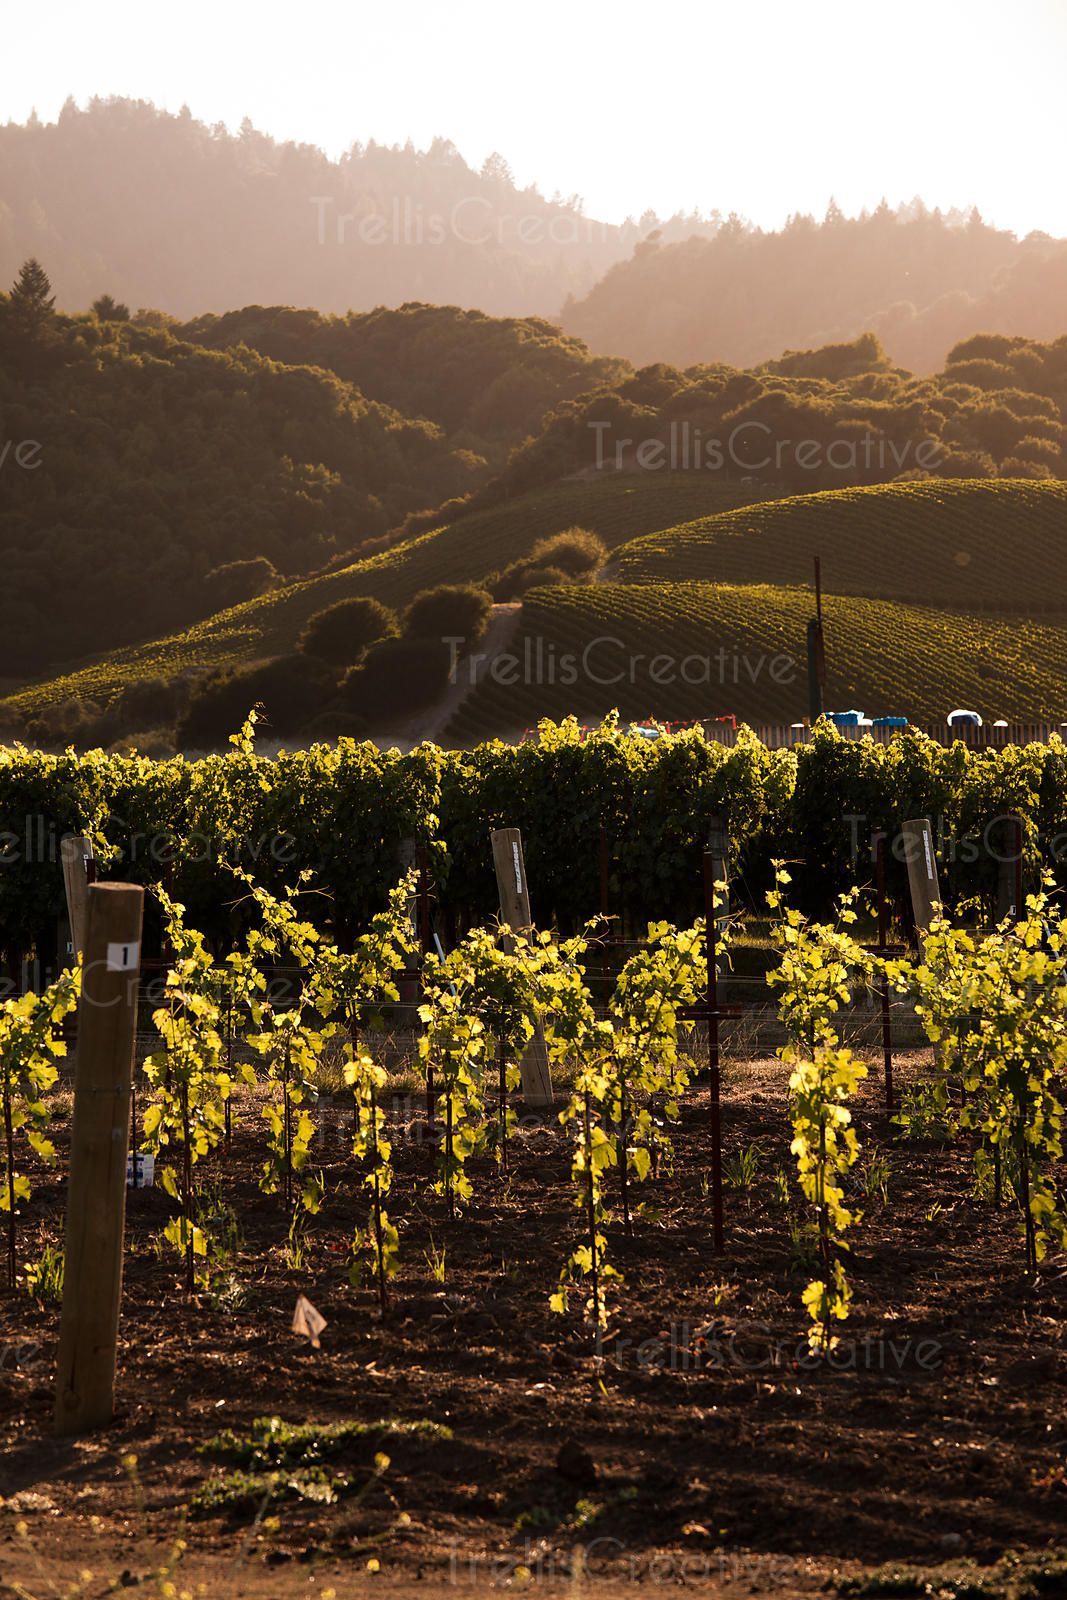 Newly planted vines in the Napa Valley at the foot of a Yountville hillside